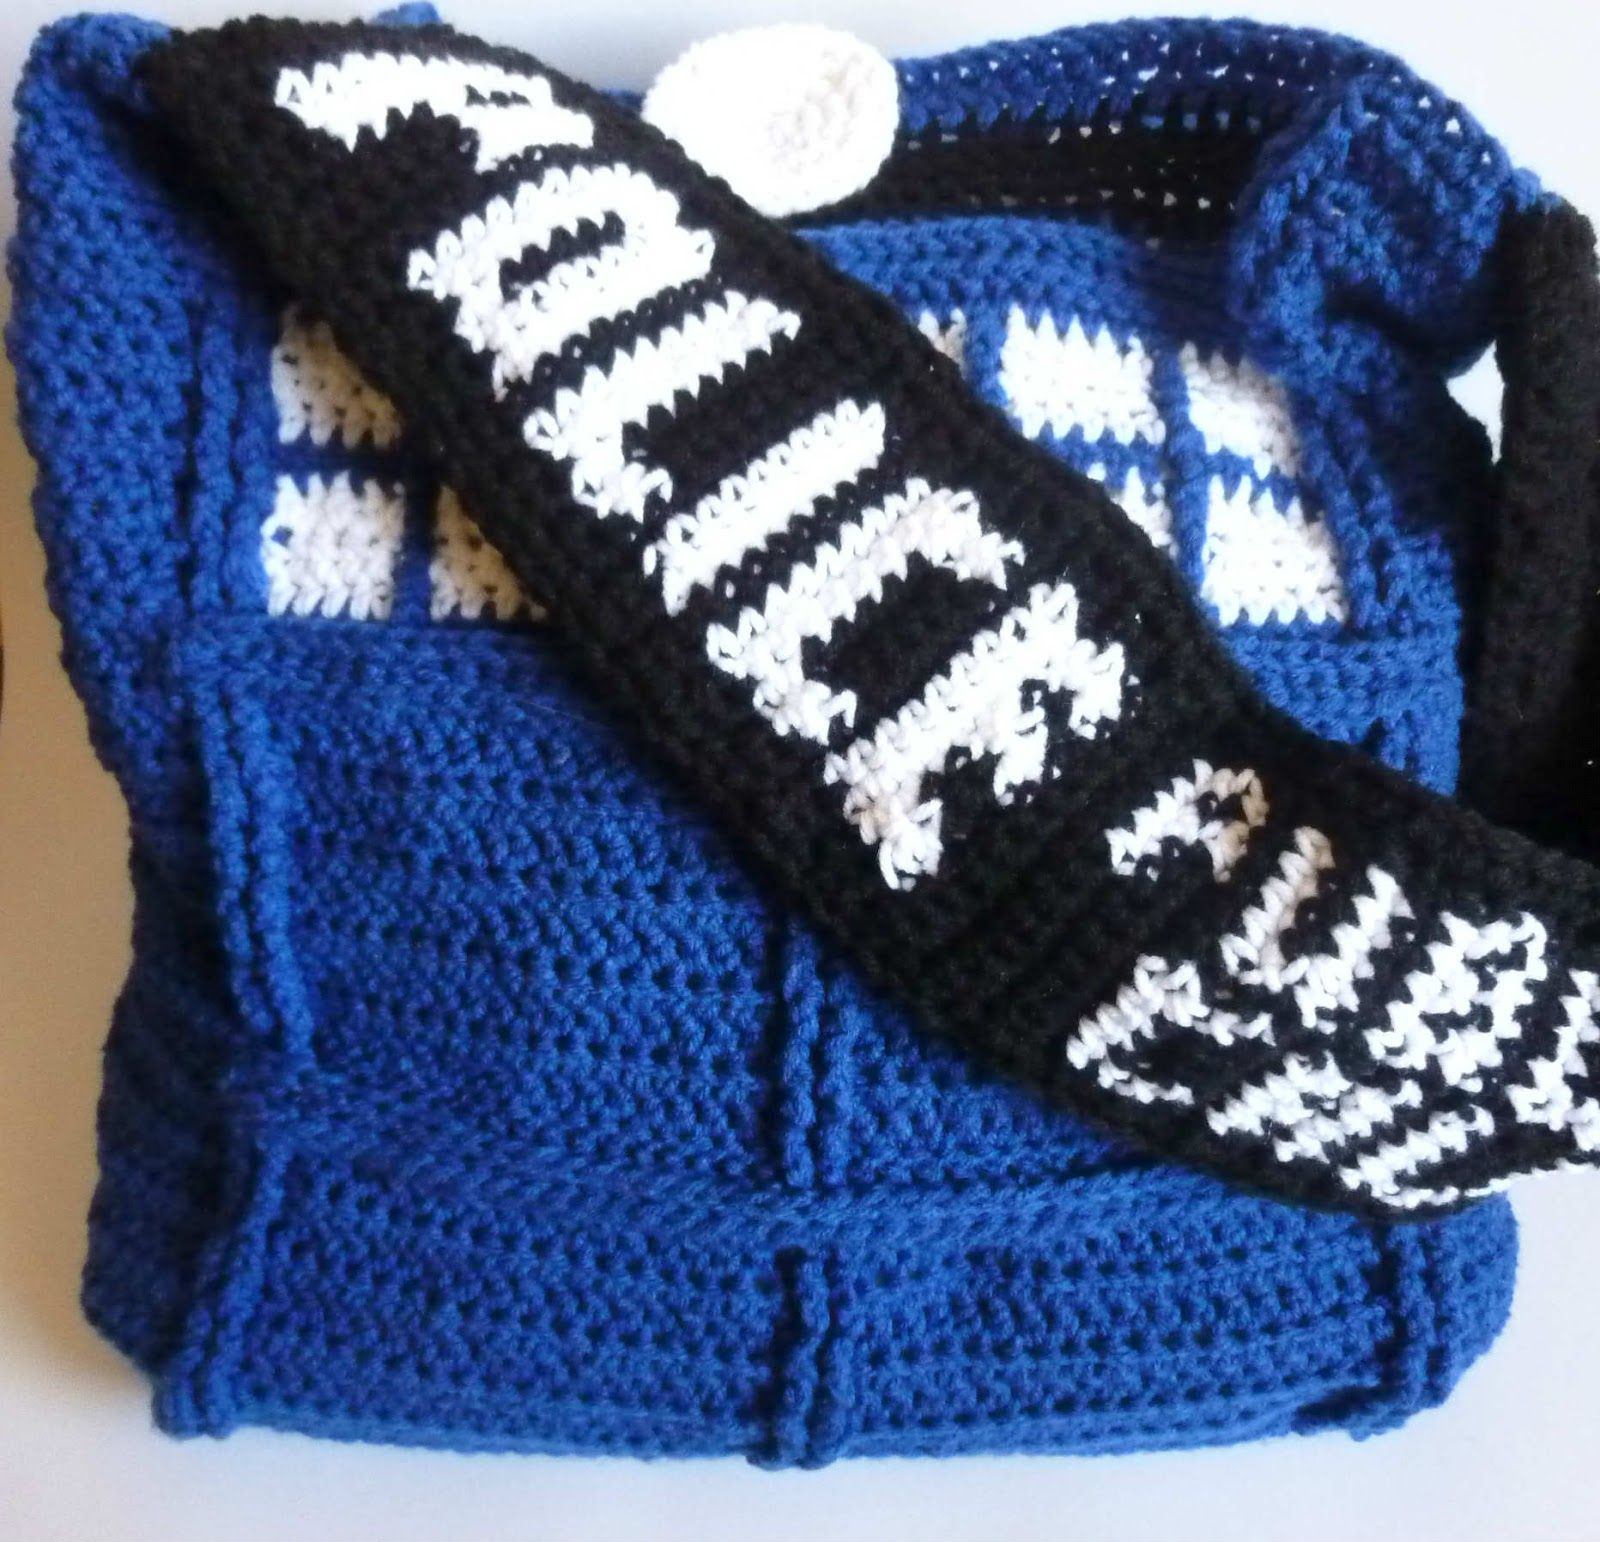 Tardis Bag Knitting Pattern : Crochet Dynamite: The Tardis Bag - A love story in 3 parts http://www.crochet...